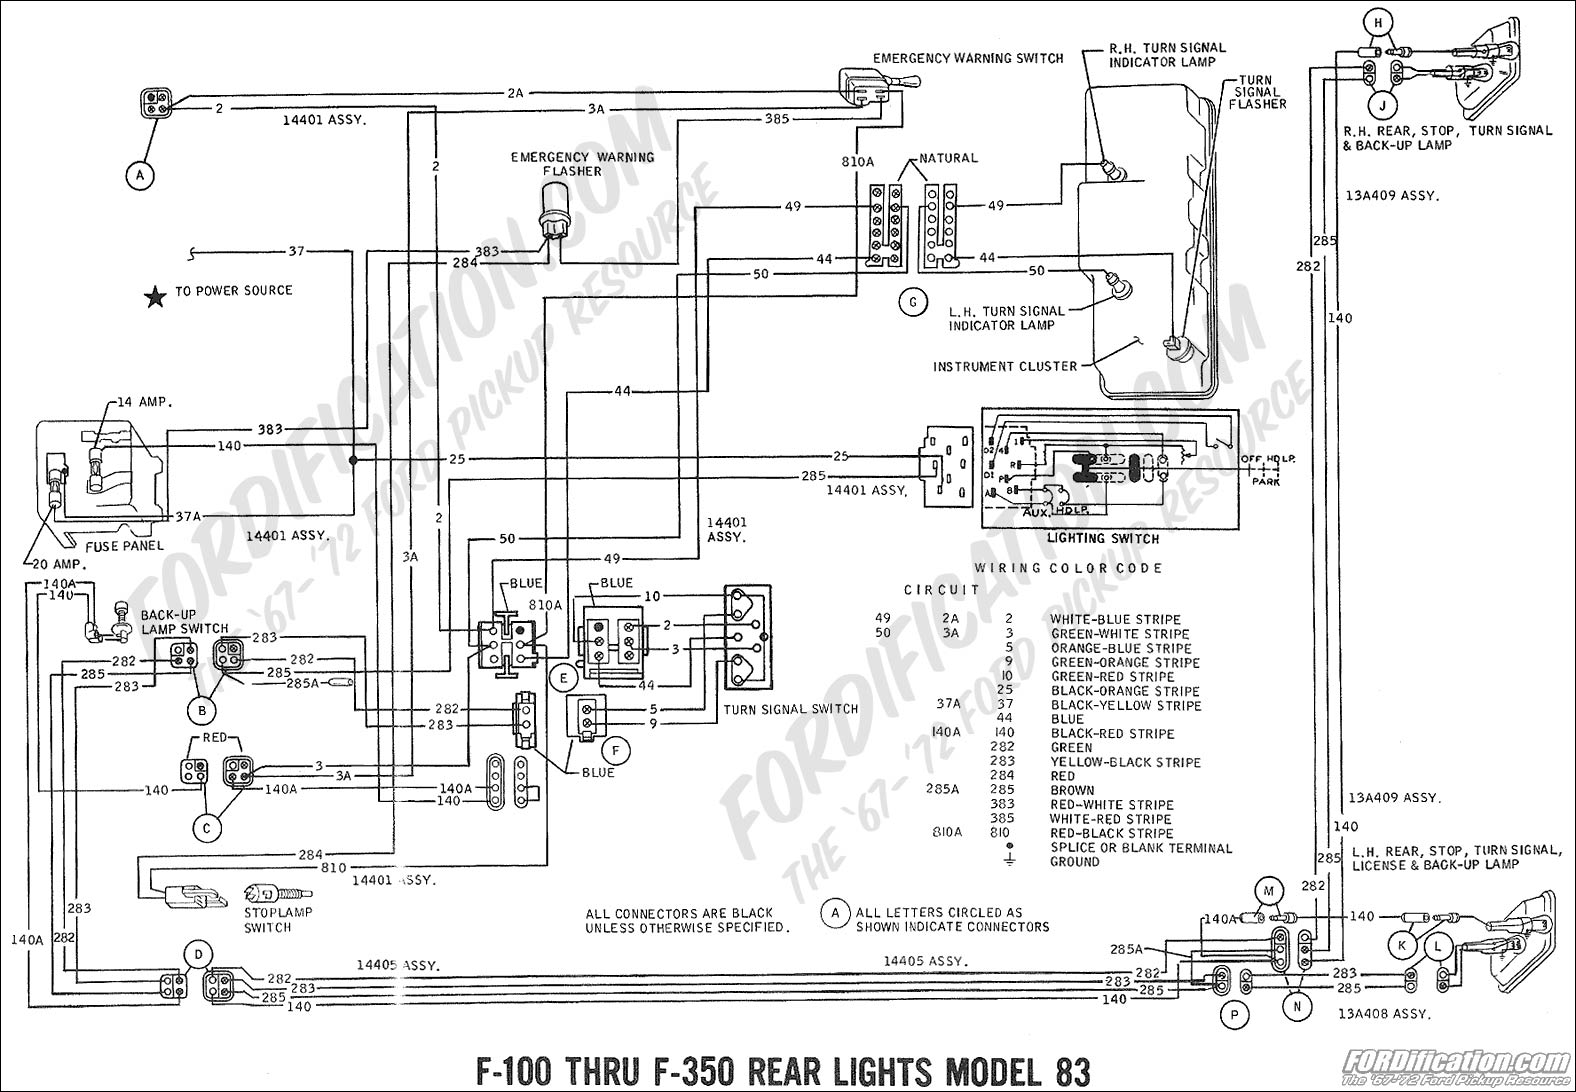 1962 ford truck wiring diagram wiring data rh unroutine co